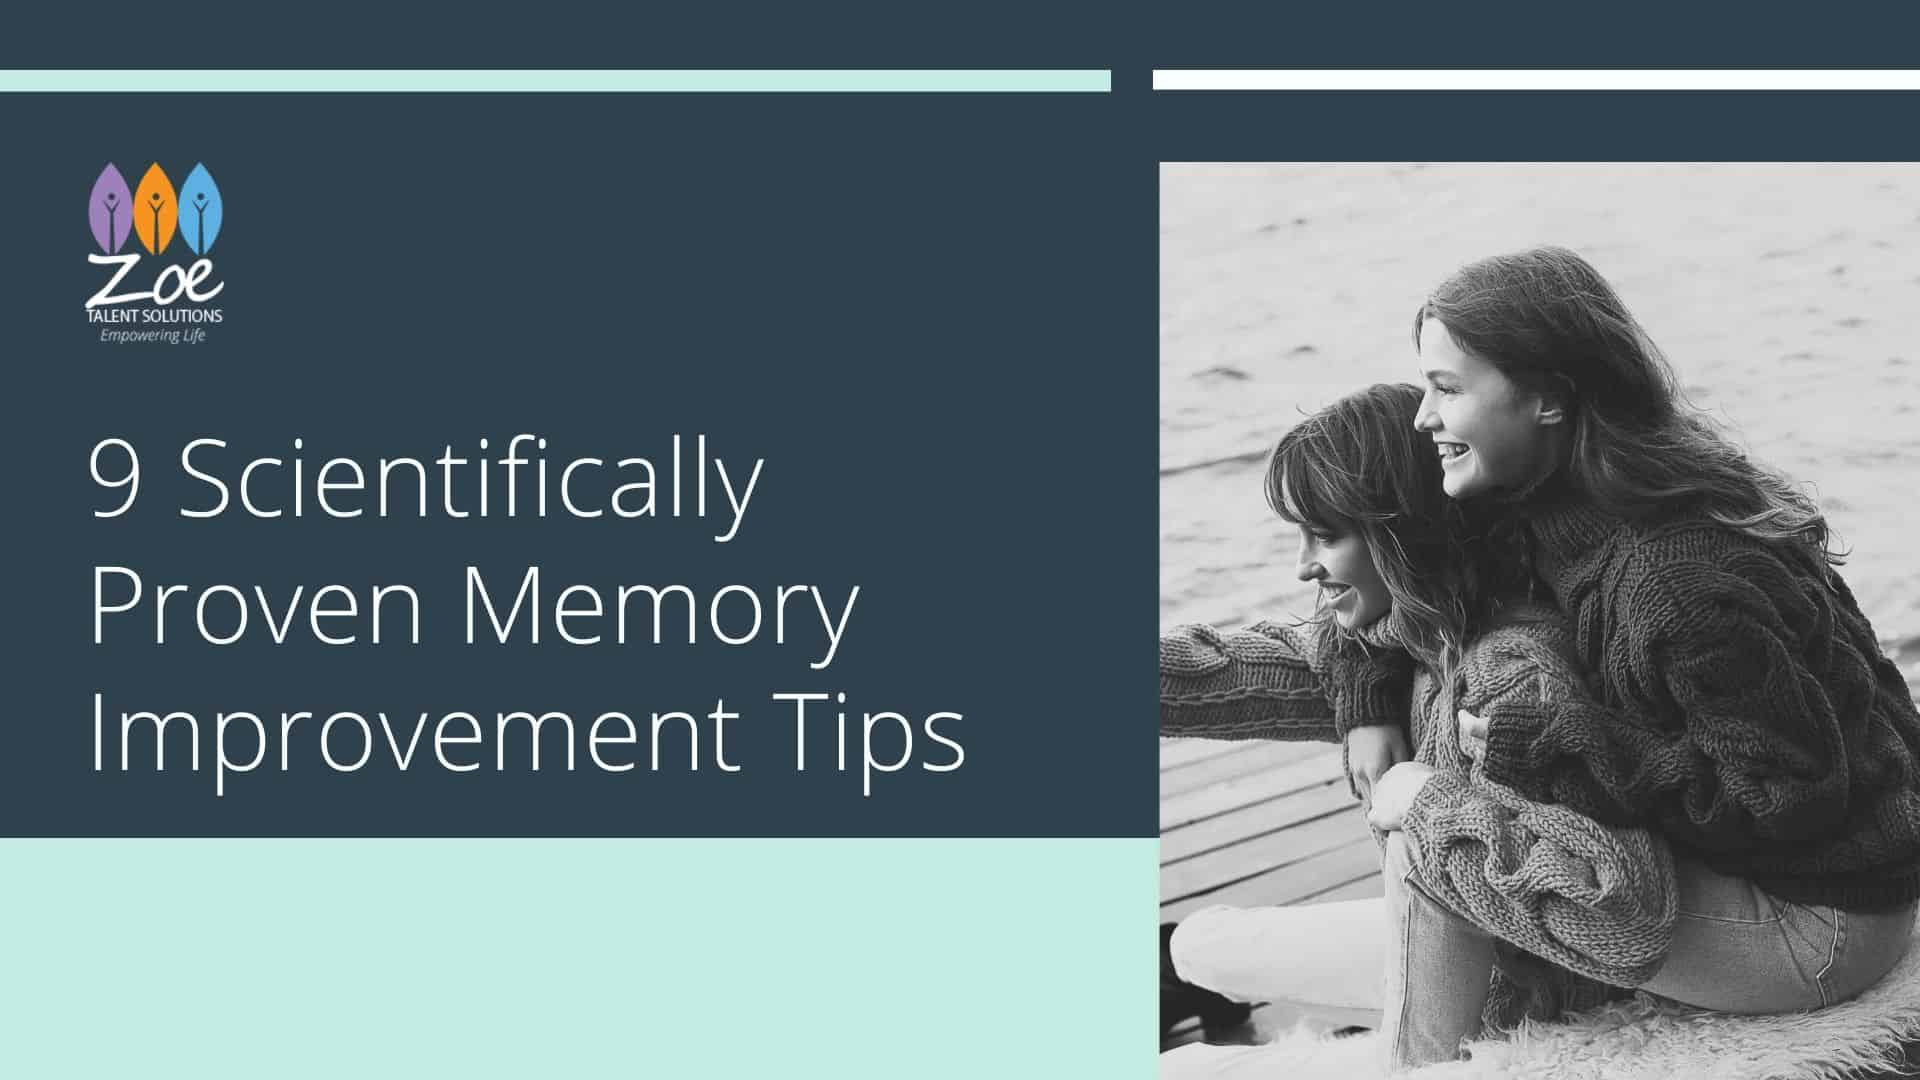 9 Scientifically Proven Memory Improvement Tips